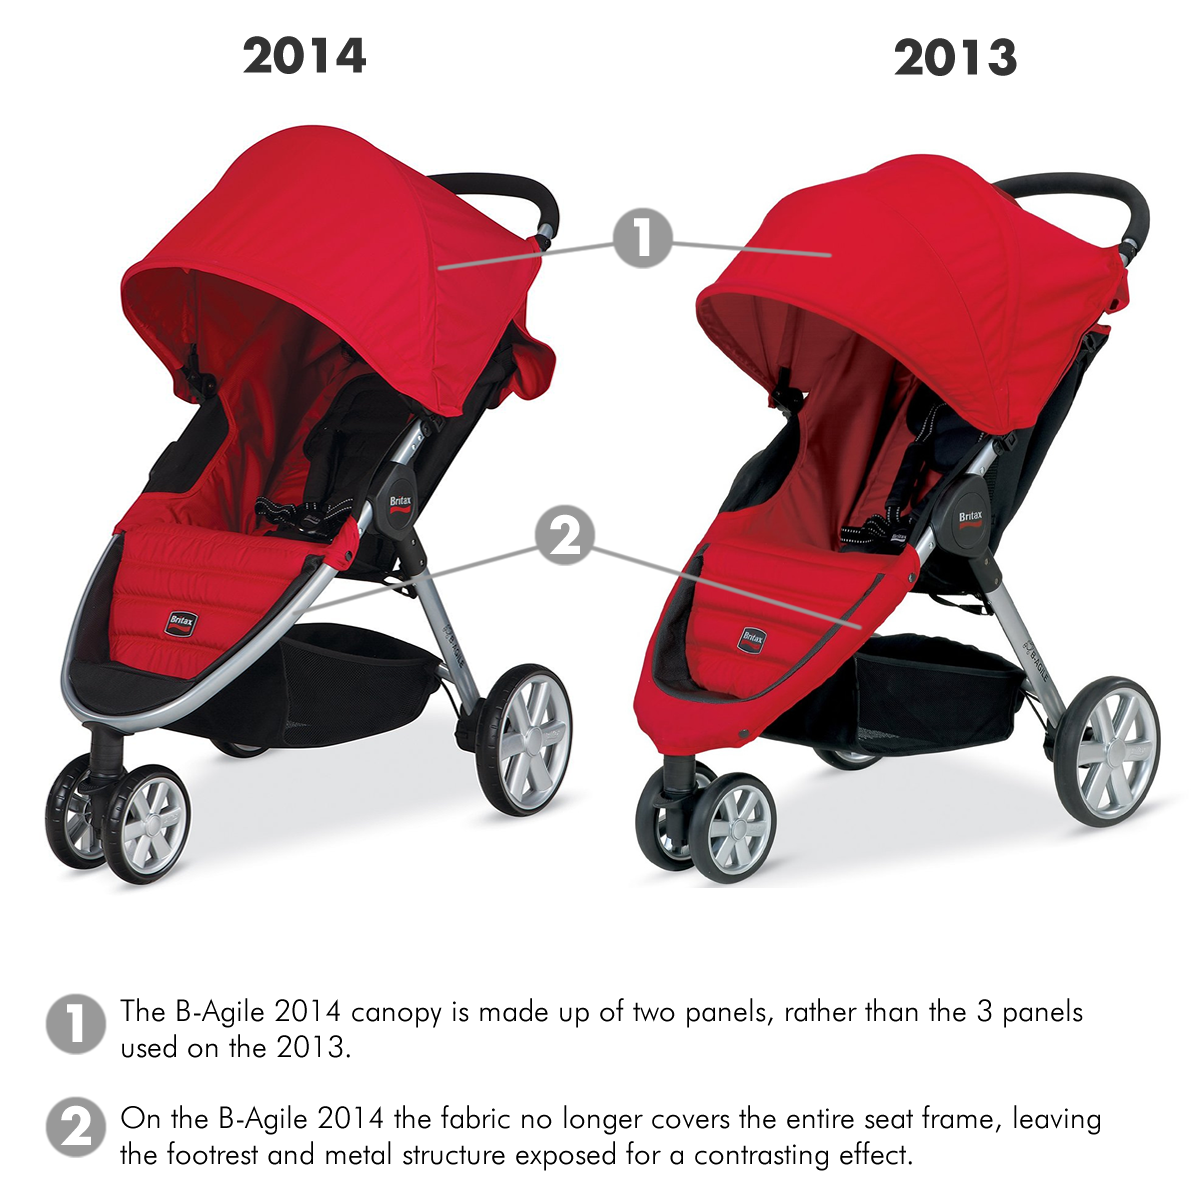 Whatu0027s the difference between the 2013 and 2014 B-Agile strollers? Click here to find out!  sc 1 st  Albee Baby & Britax B-Agile Double Stroller - Sandstone